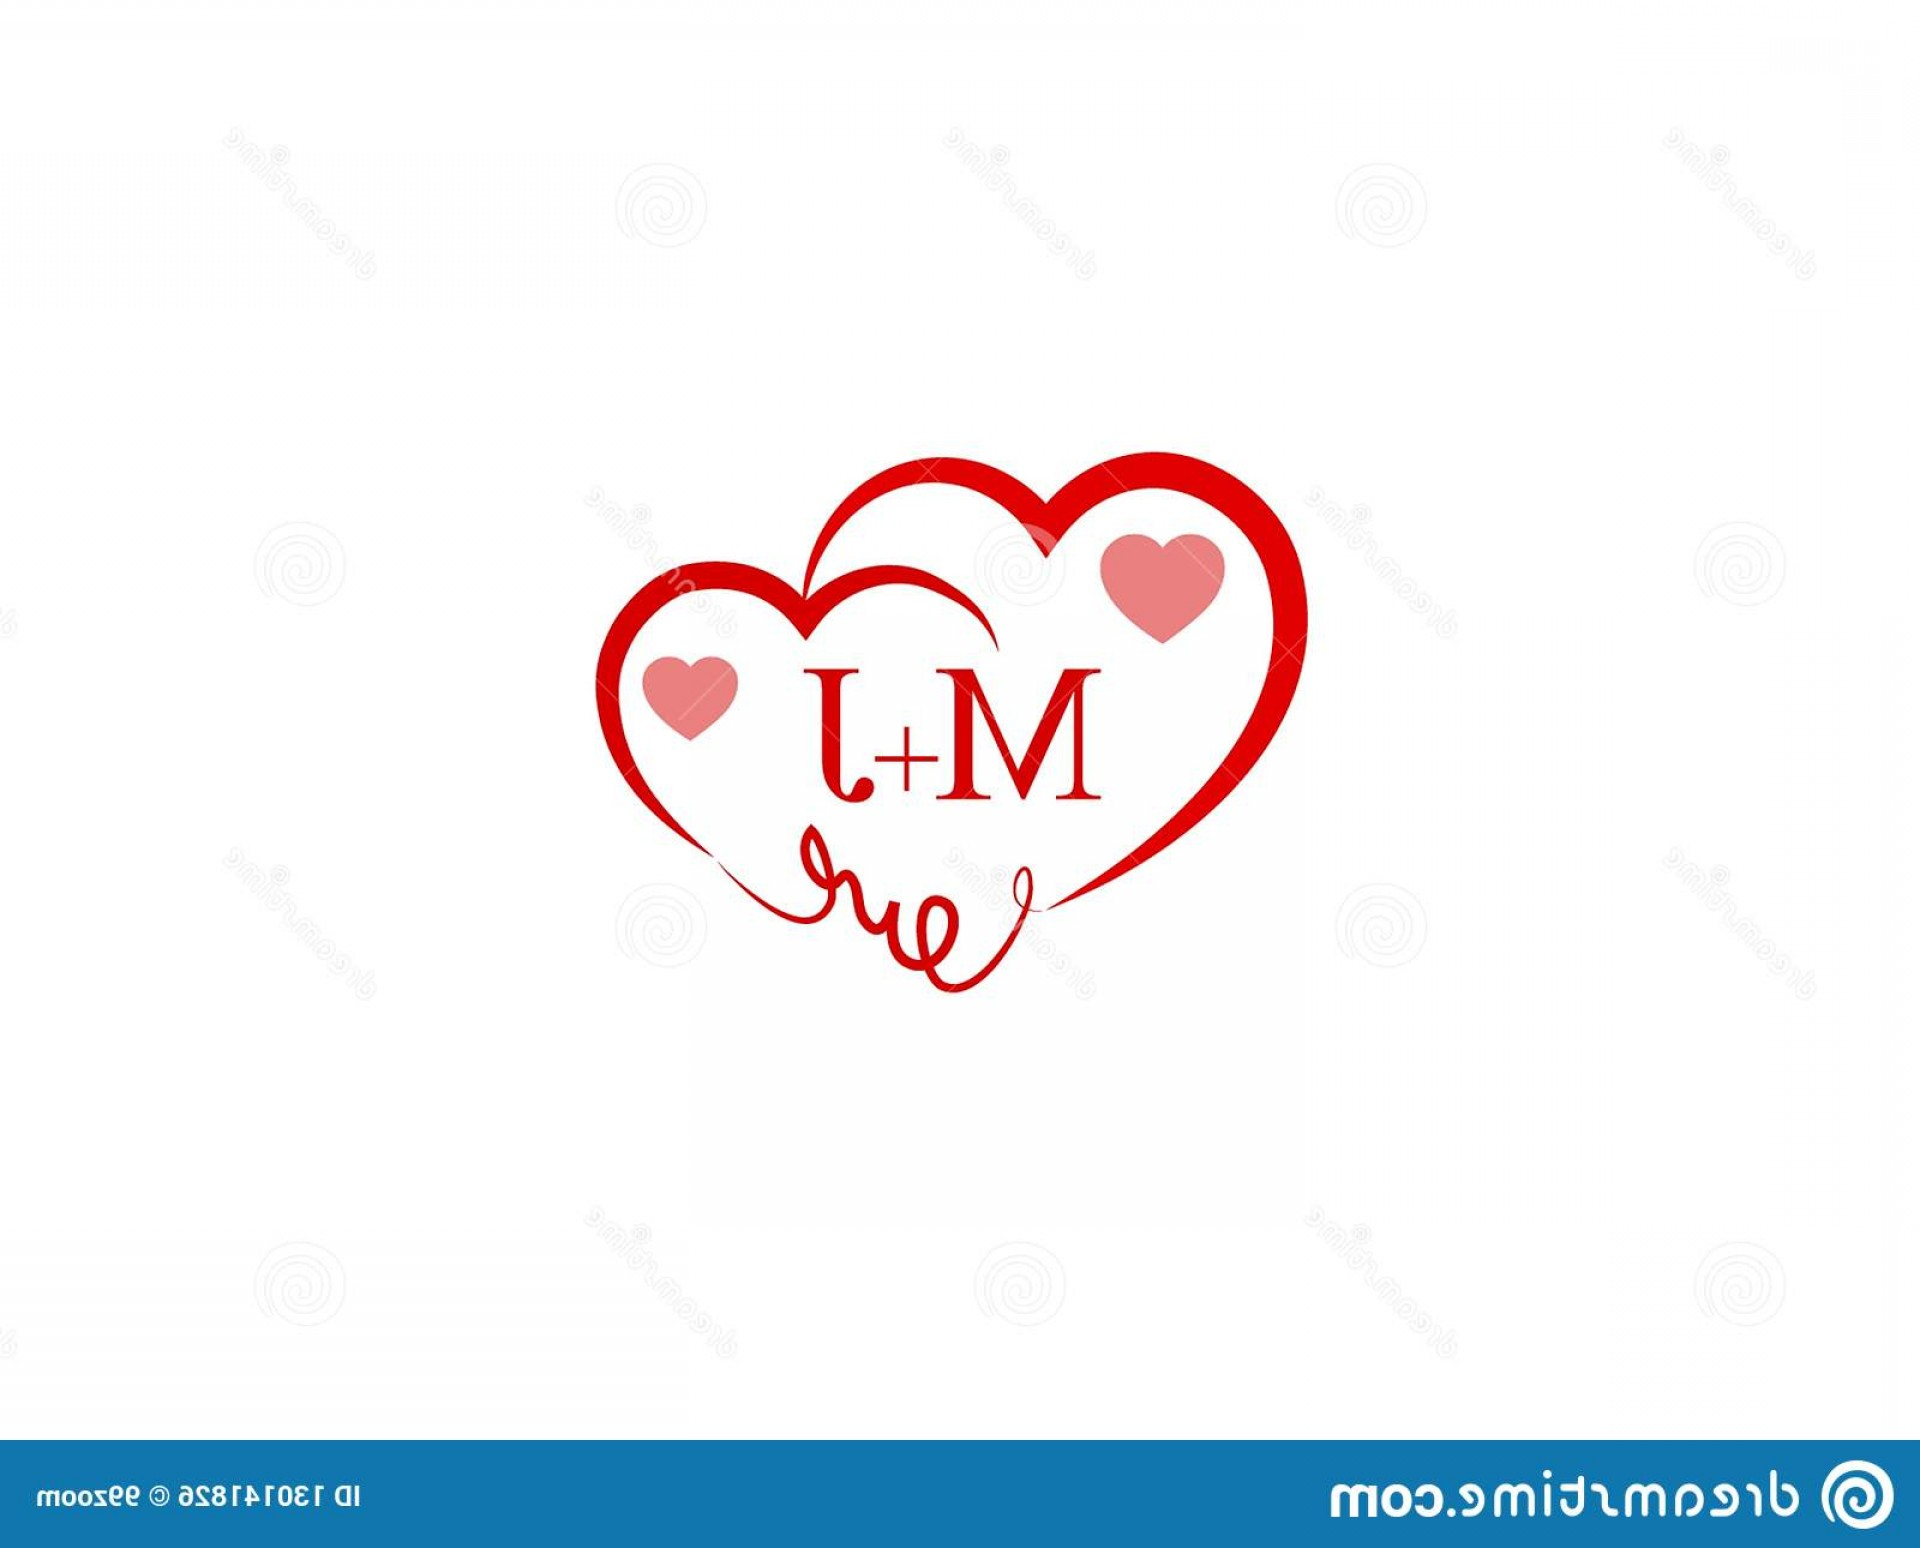 Love M J Vector: Mj Initial Heart Shape Red Colored Love Logo Letter Design Wedding Invitation Name Business Image